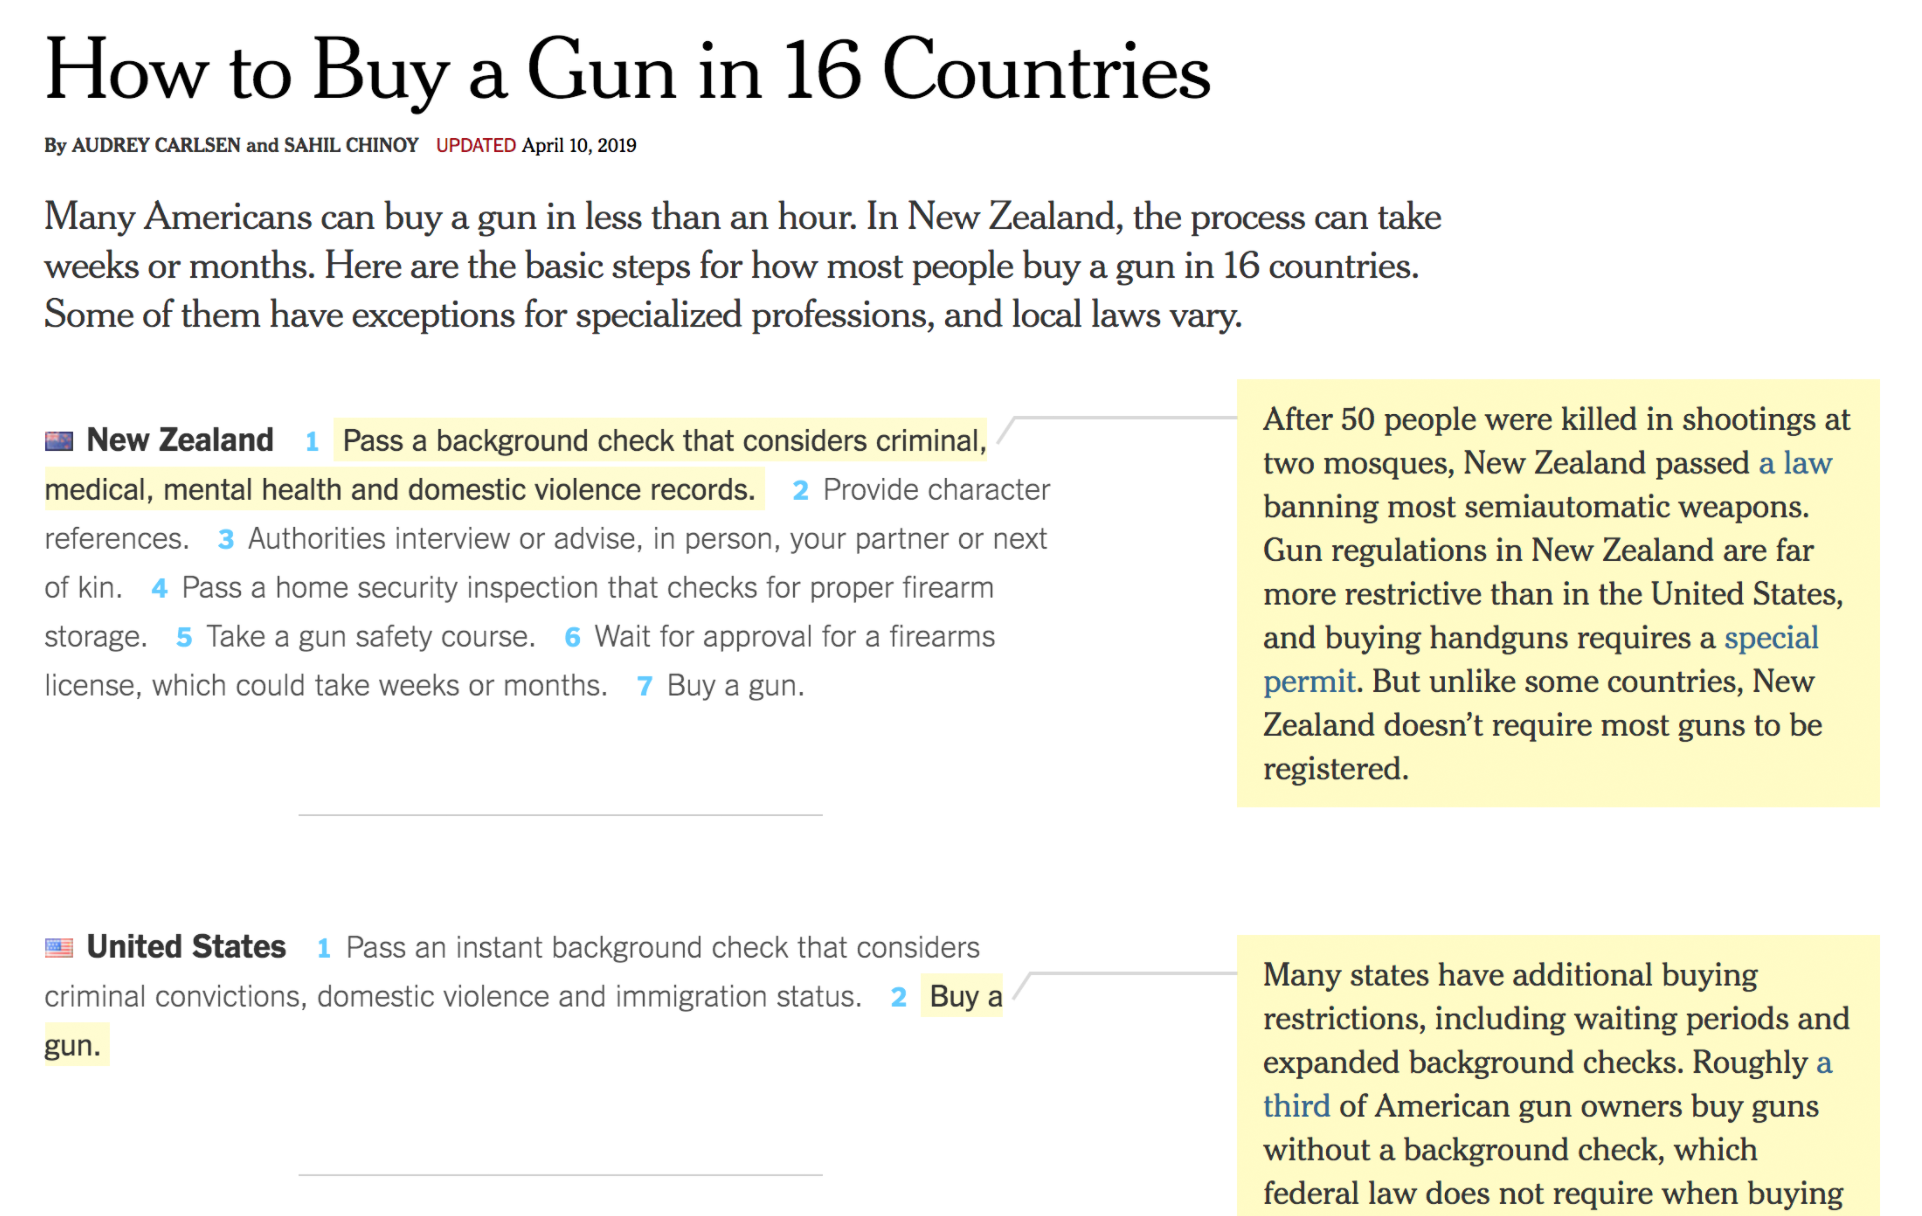 https://www.nytimes.com/interactive/2018/03/02/world/international-gun-laws.html